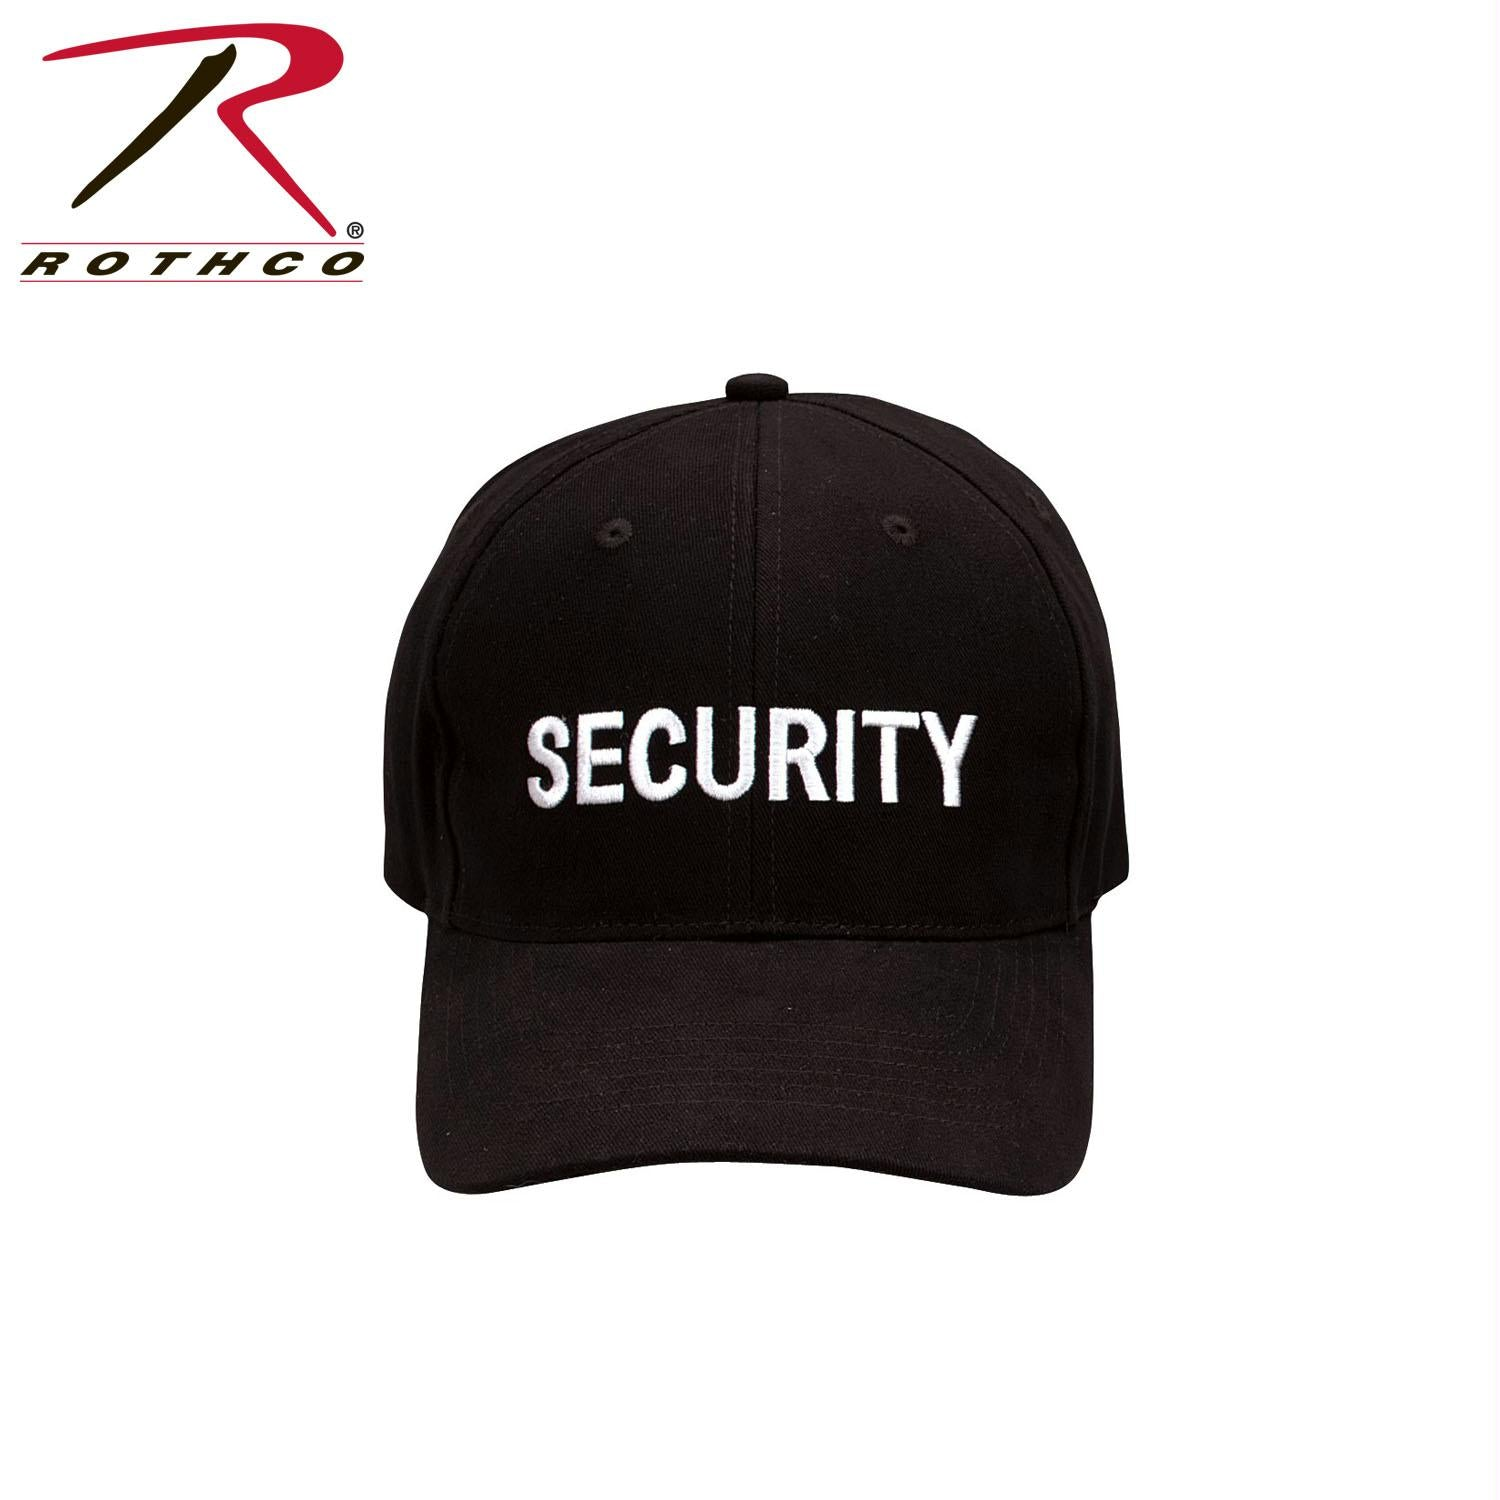 Rothco Security Supreme Low Profile Insignia Cap